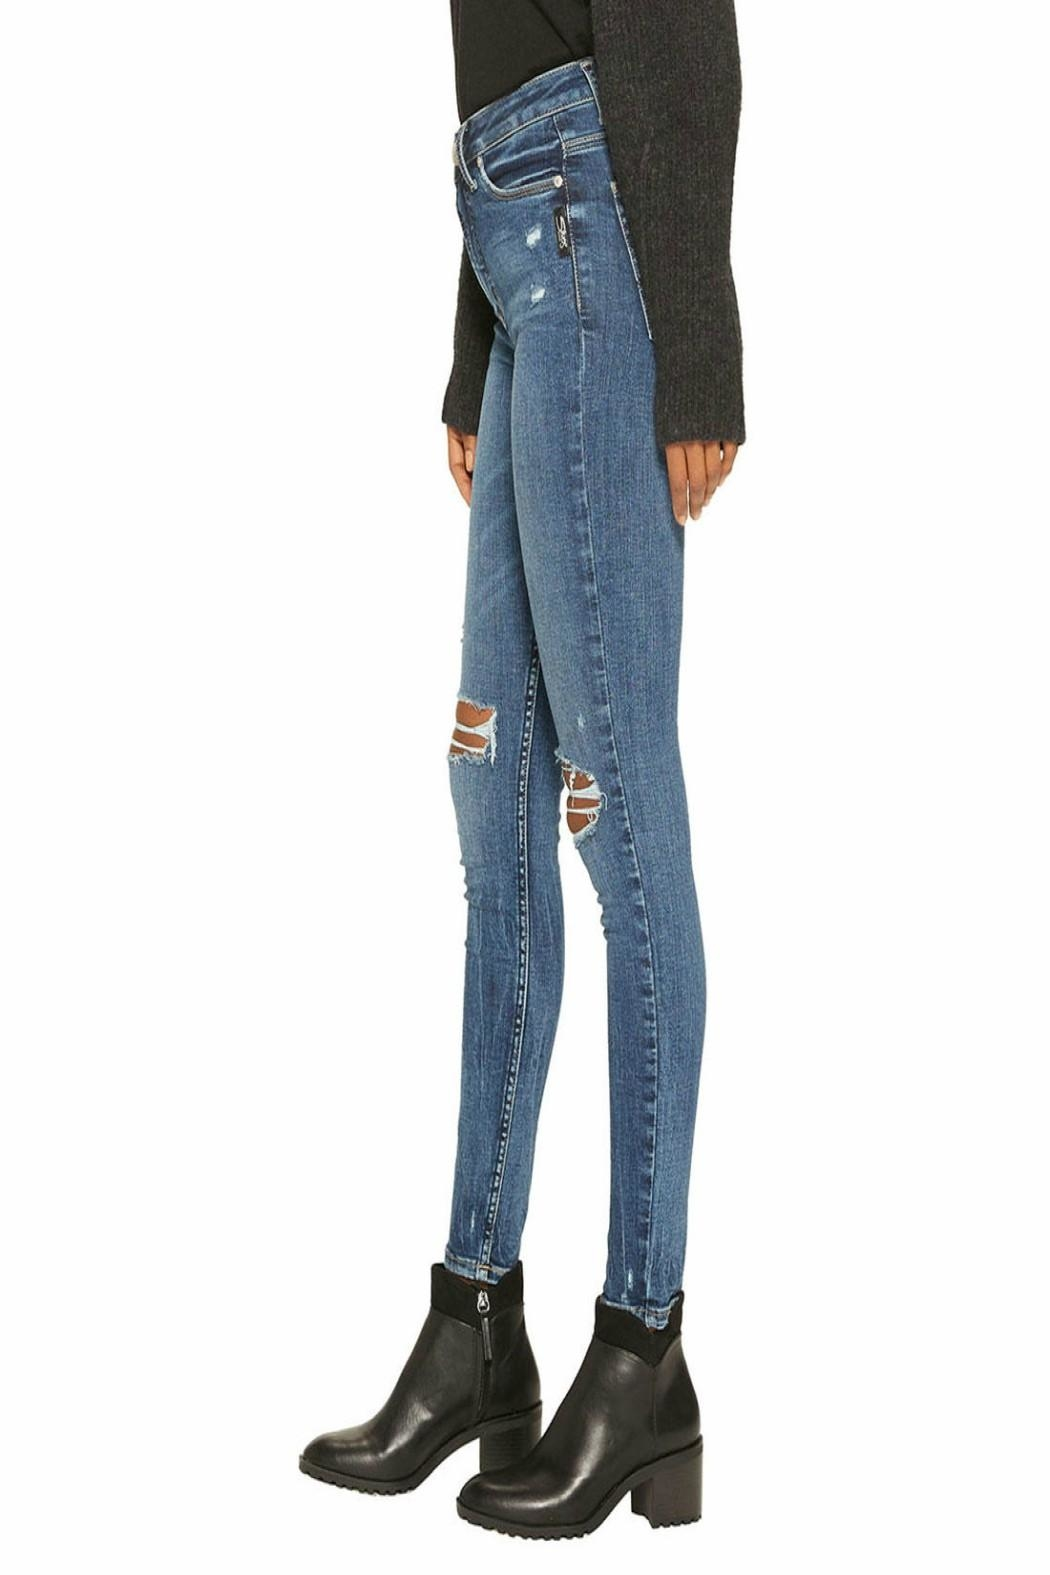 Silver Jeans Co. Robson High-Rise Skinny - Side Cropped Image